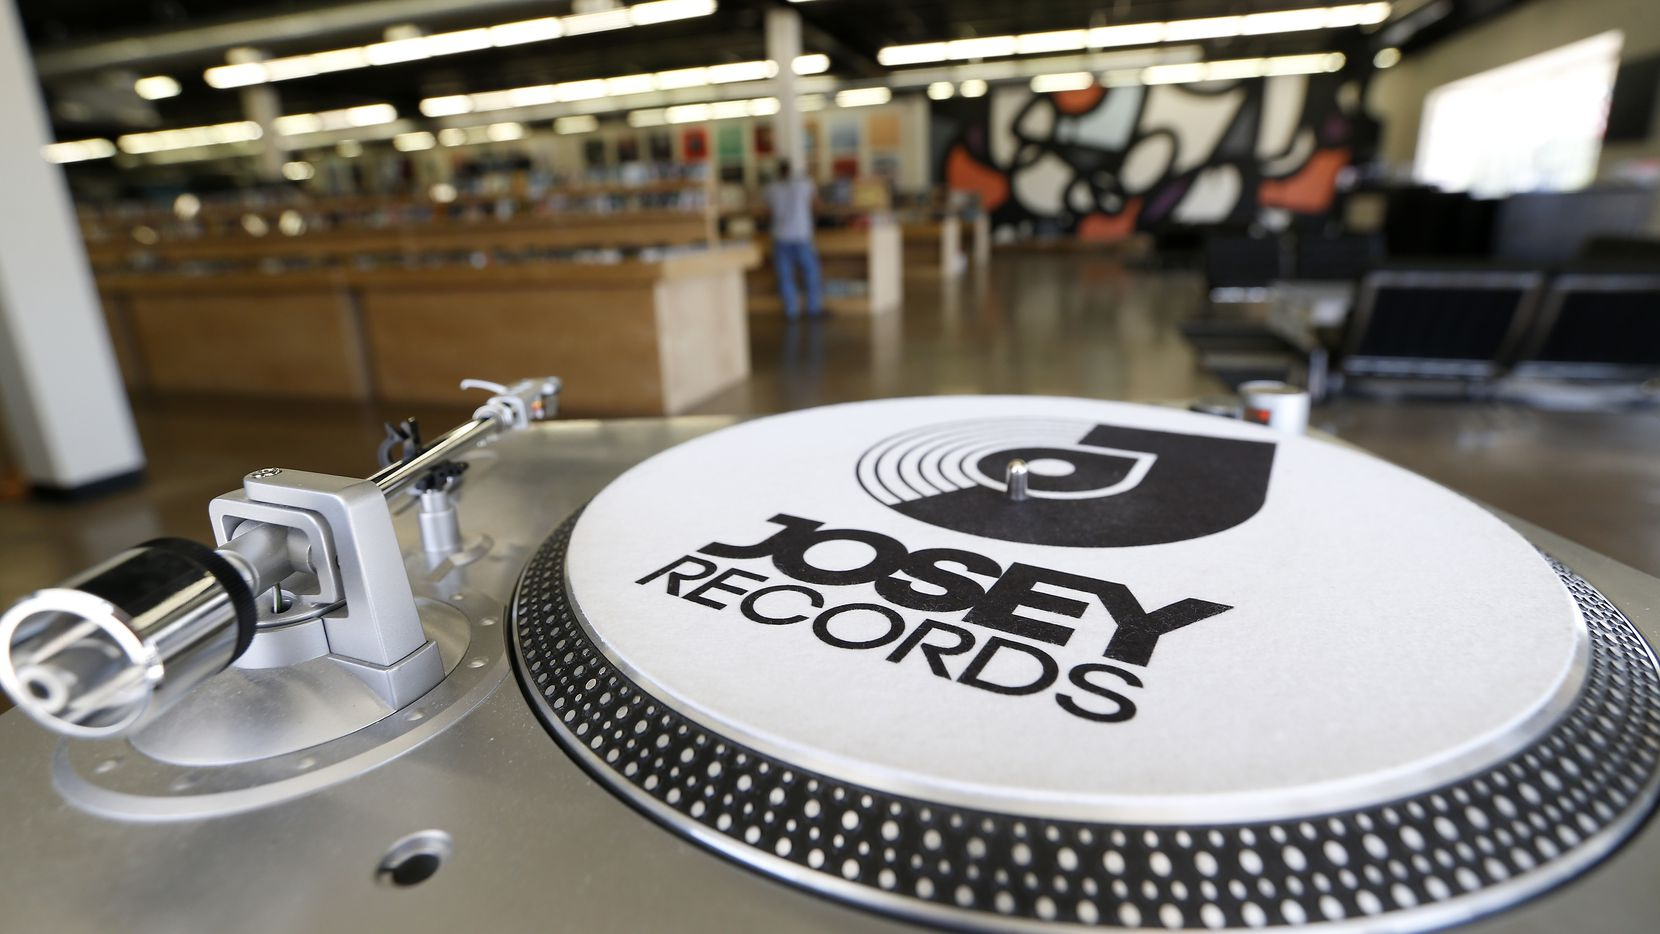 A turntable show at Josey Records in Farmers Branch on July 28, 2017.